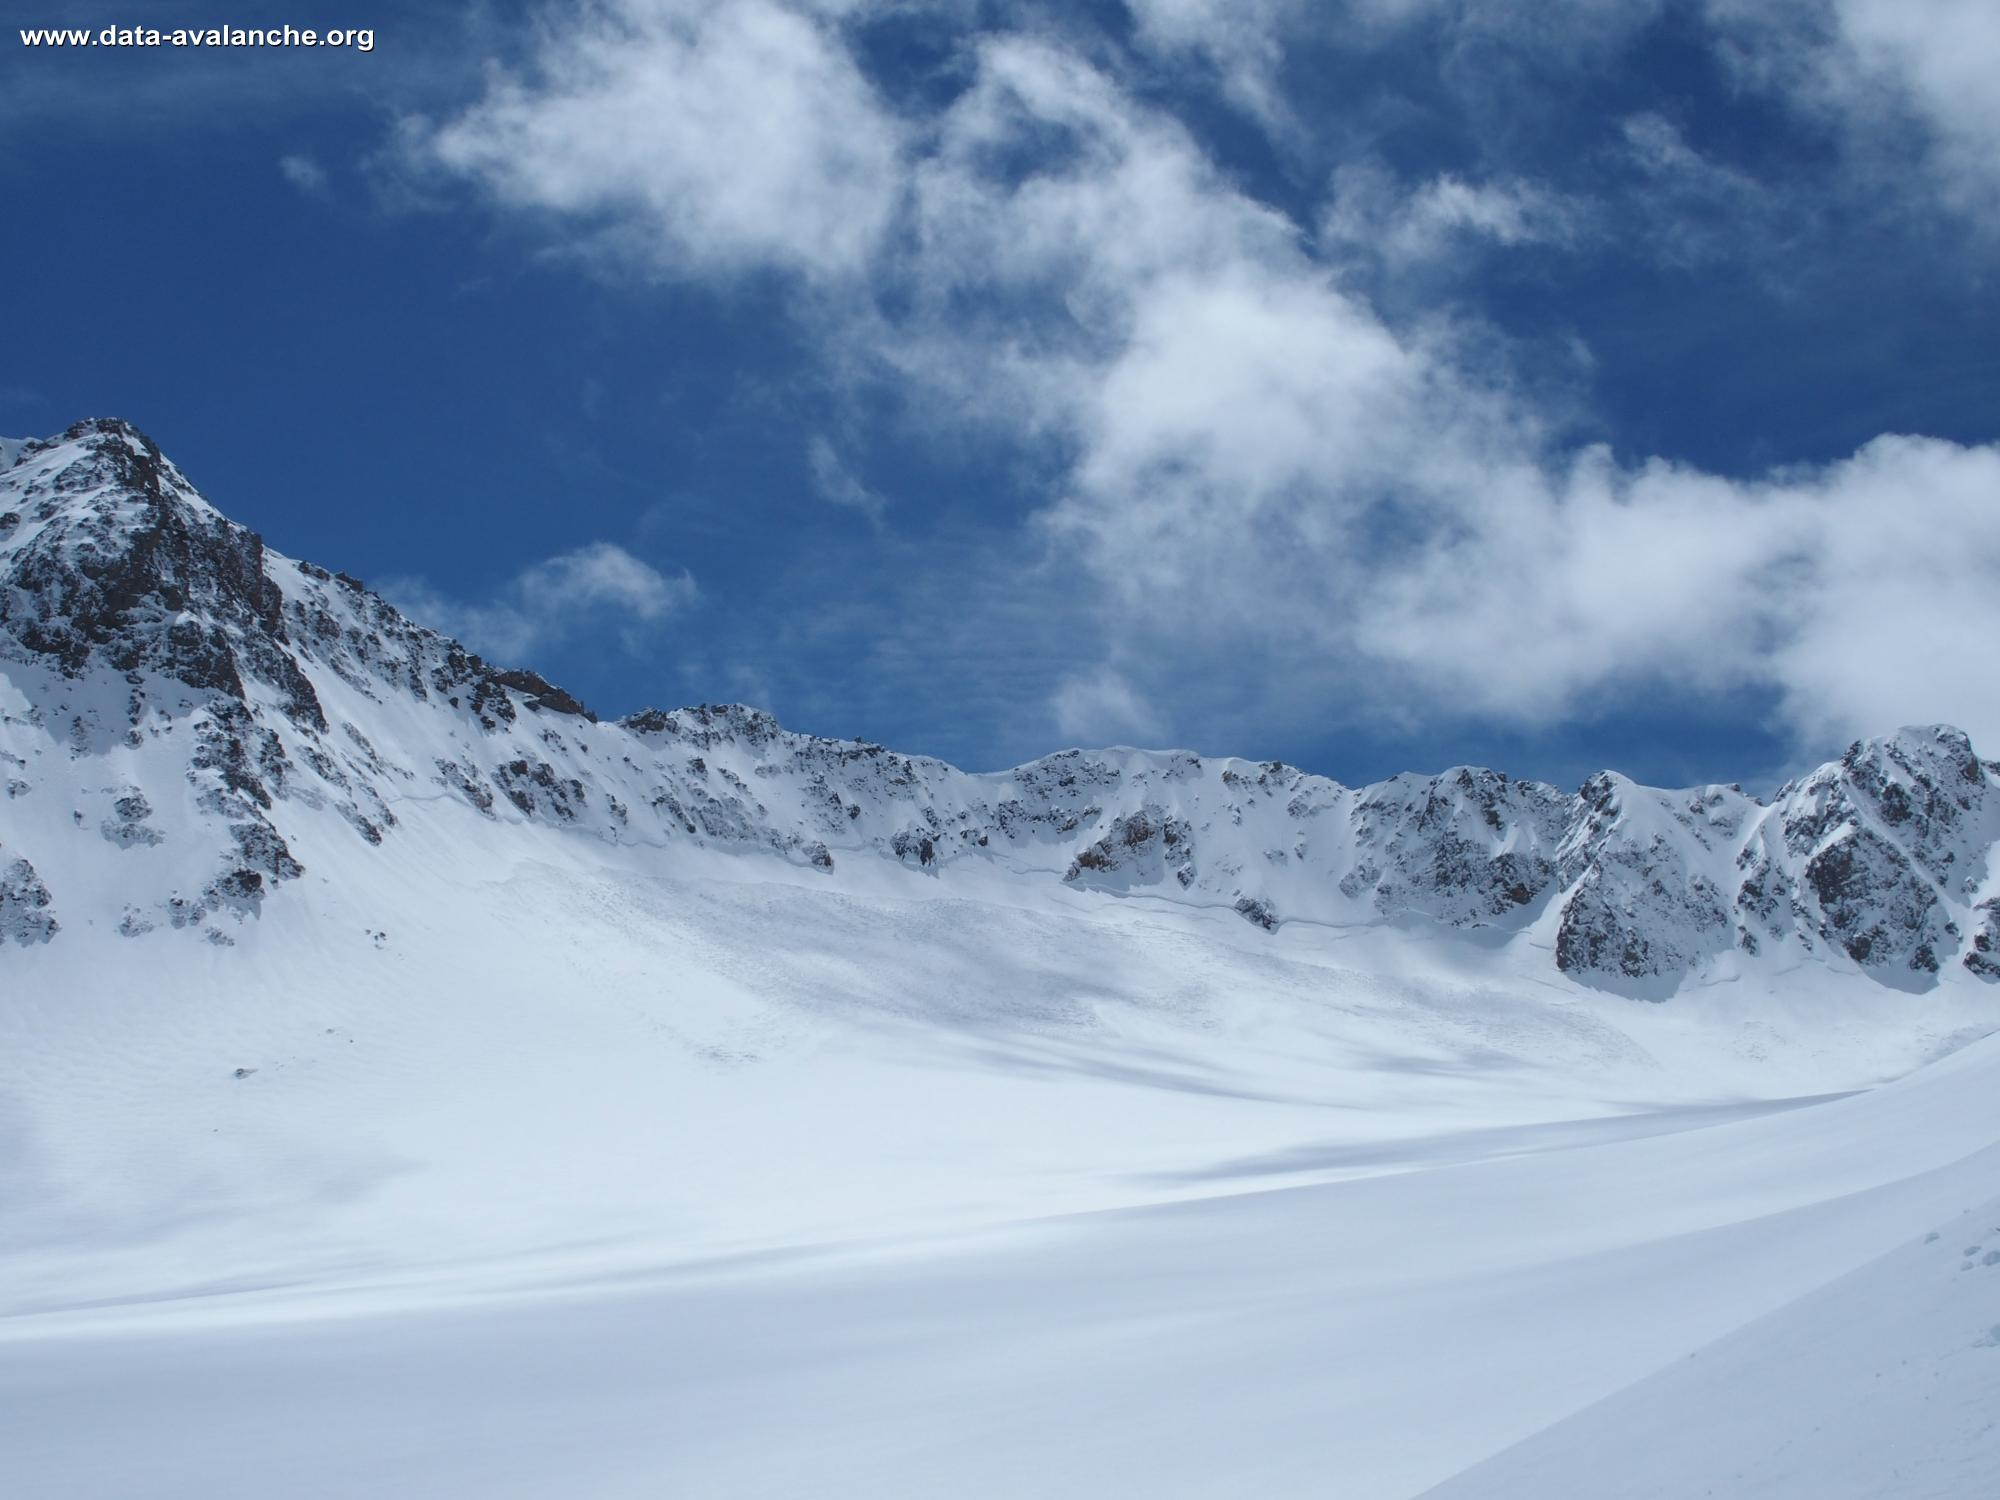 Avalanche Grandes Rousses, Col du Petit Sauvage - Photo 1